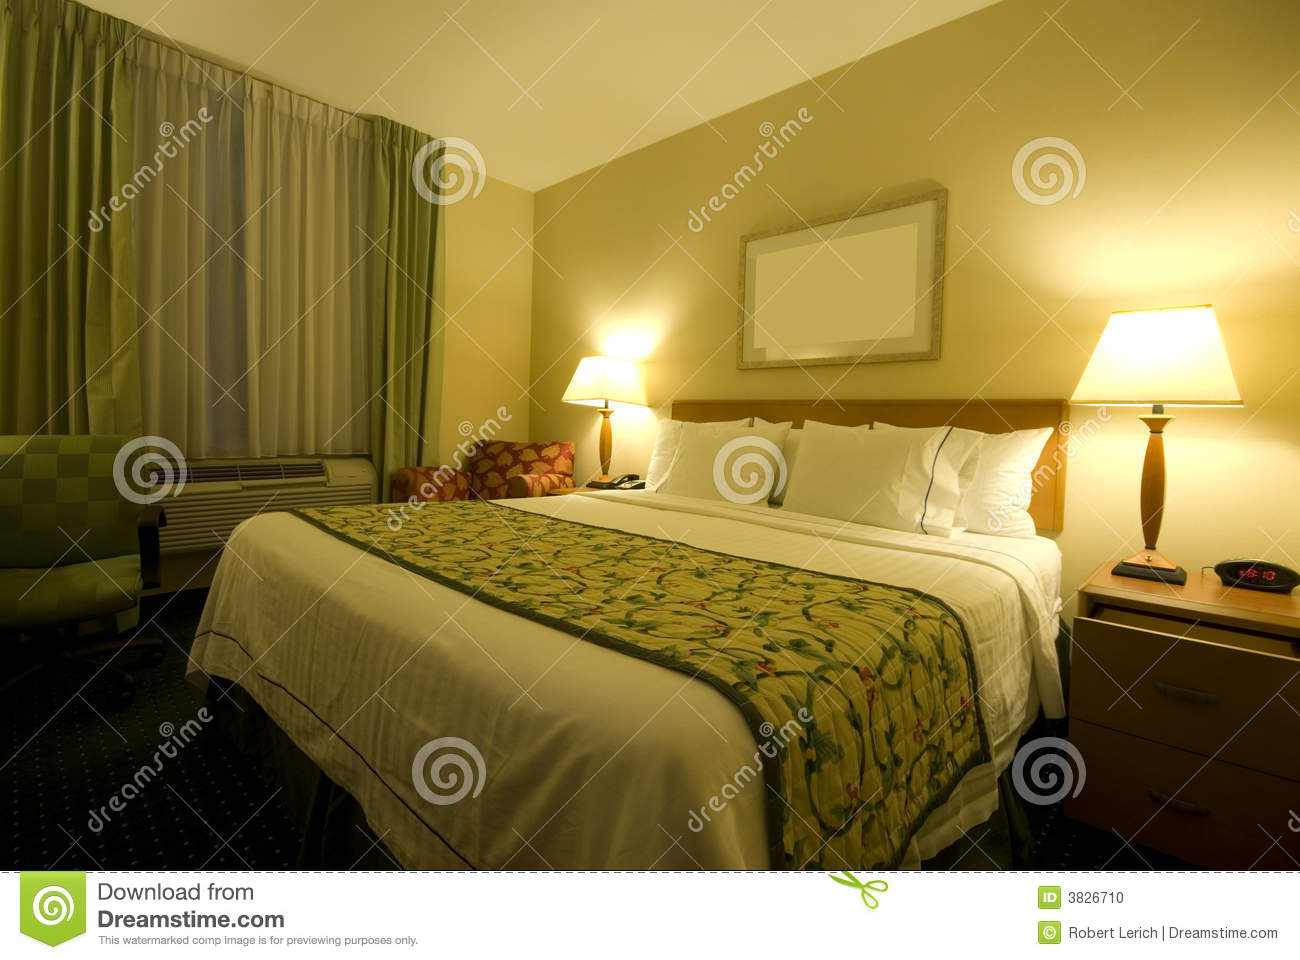 Hotel Room With Queen Size Bed Stock Photo Image 3826710